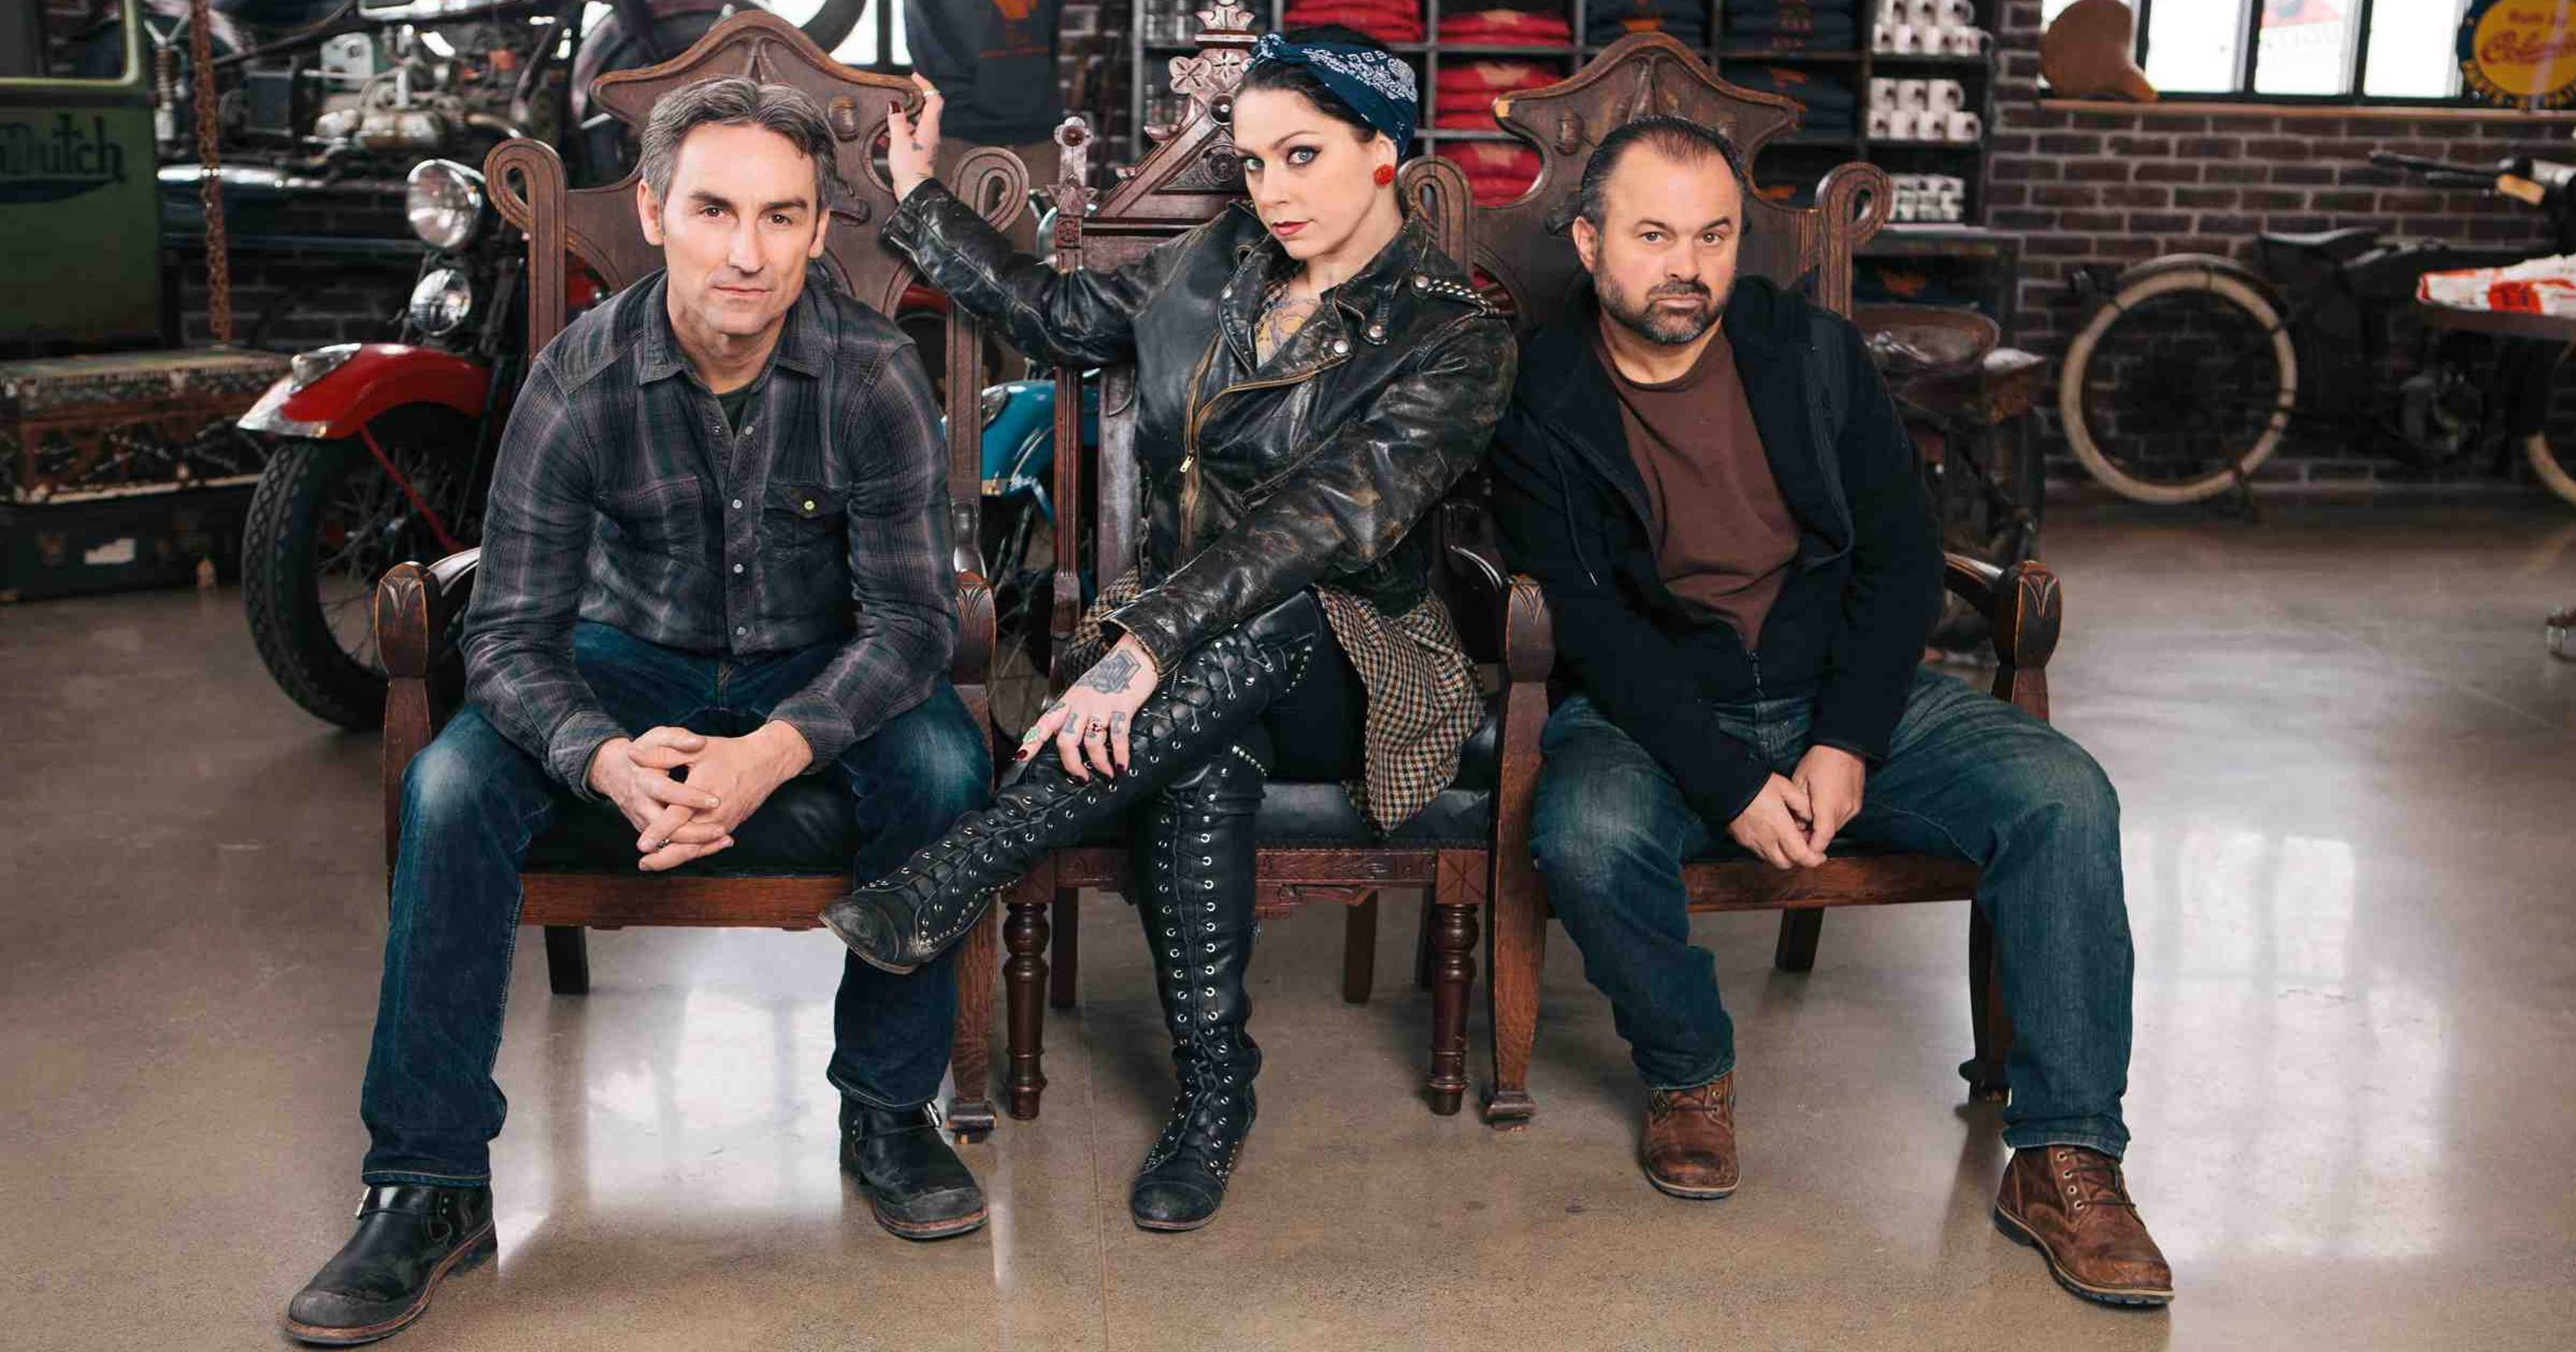 Are you the next 'American Picker'? TV show seeks Indiana